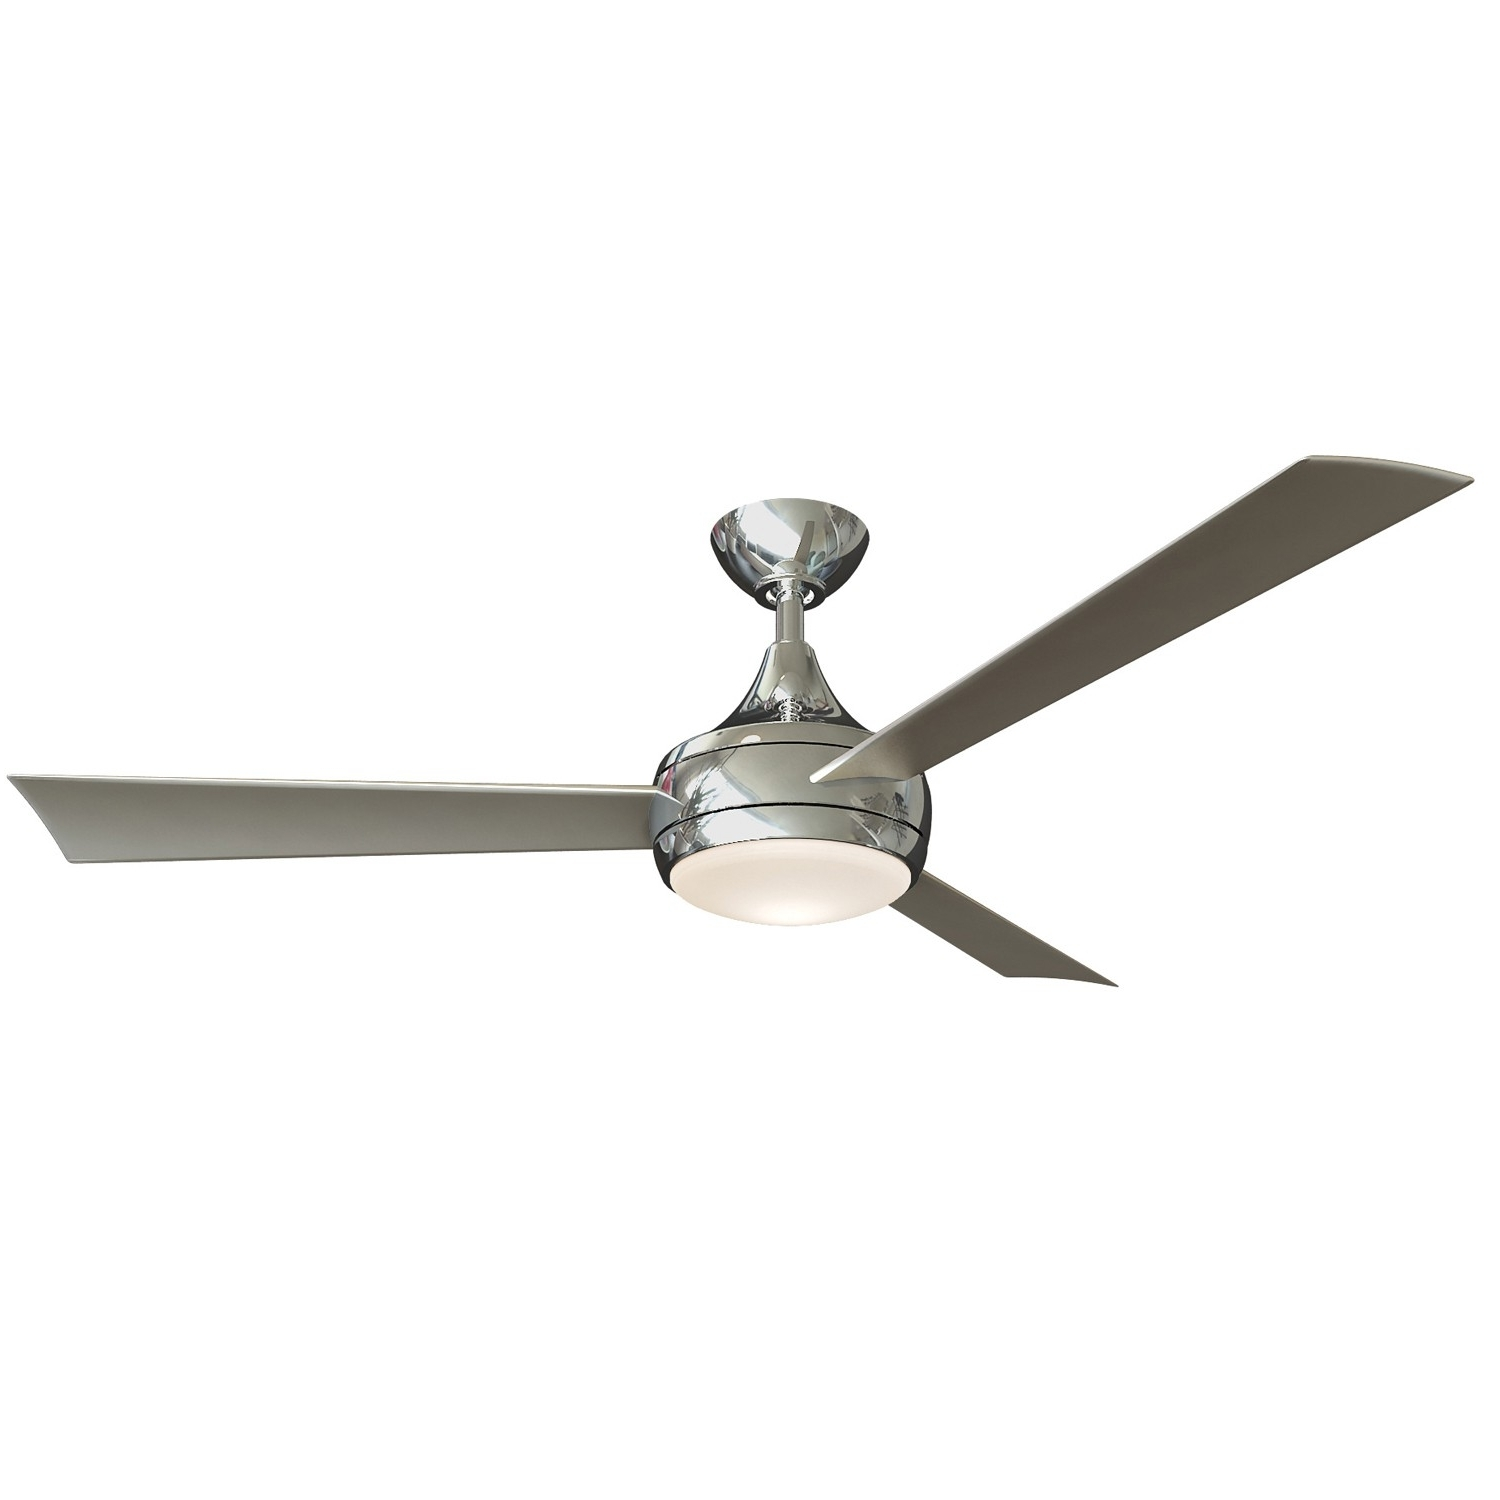 Stainless Steel Outdoor Ceiling Fans Intended For 2019 Stainless Steel Ceiling Fans Without Lights Cute Outdoor Ceiling Fan (View 14 of 20)